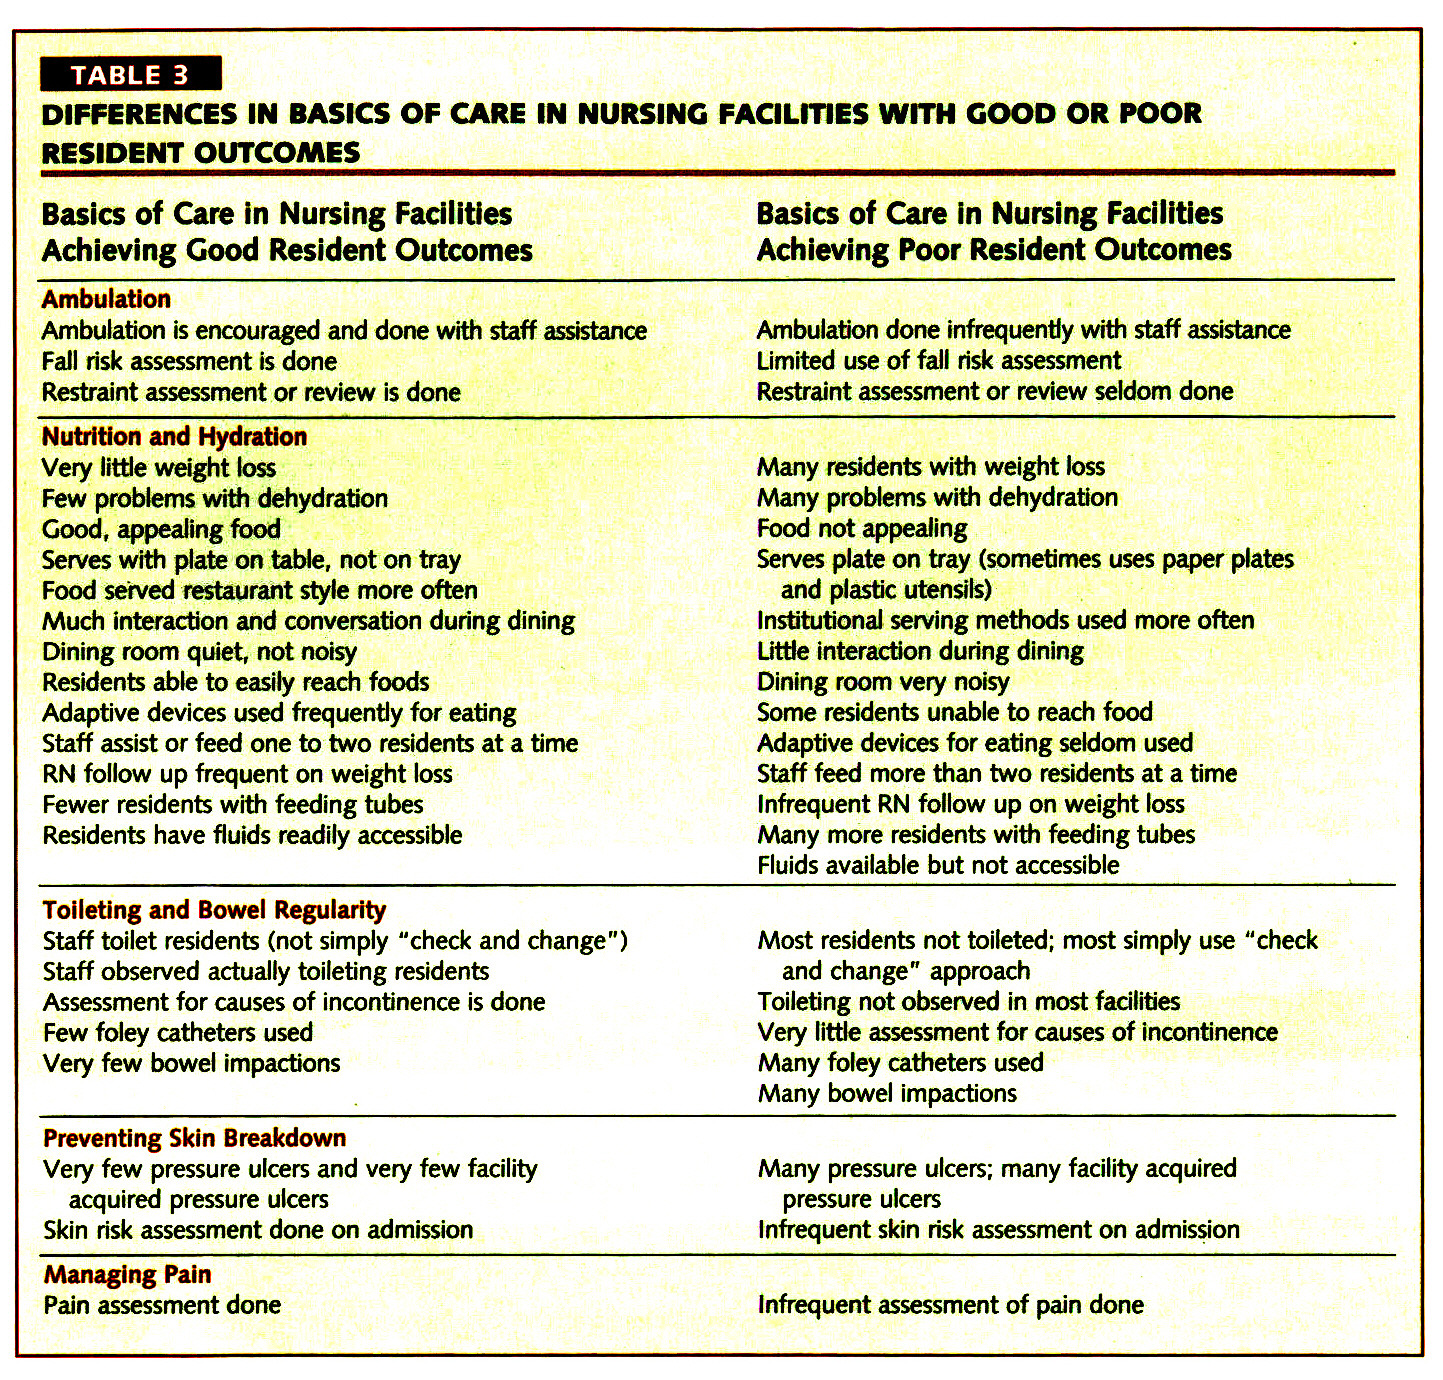 TABLE 3DIFFERENCES IN BASICS OF CARE IN NURSING FACILITIES WITH GOOD OR POOR RESIDENT OUTCOMES